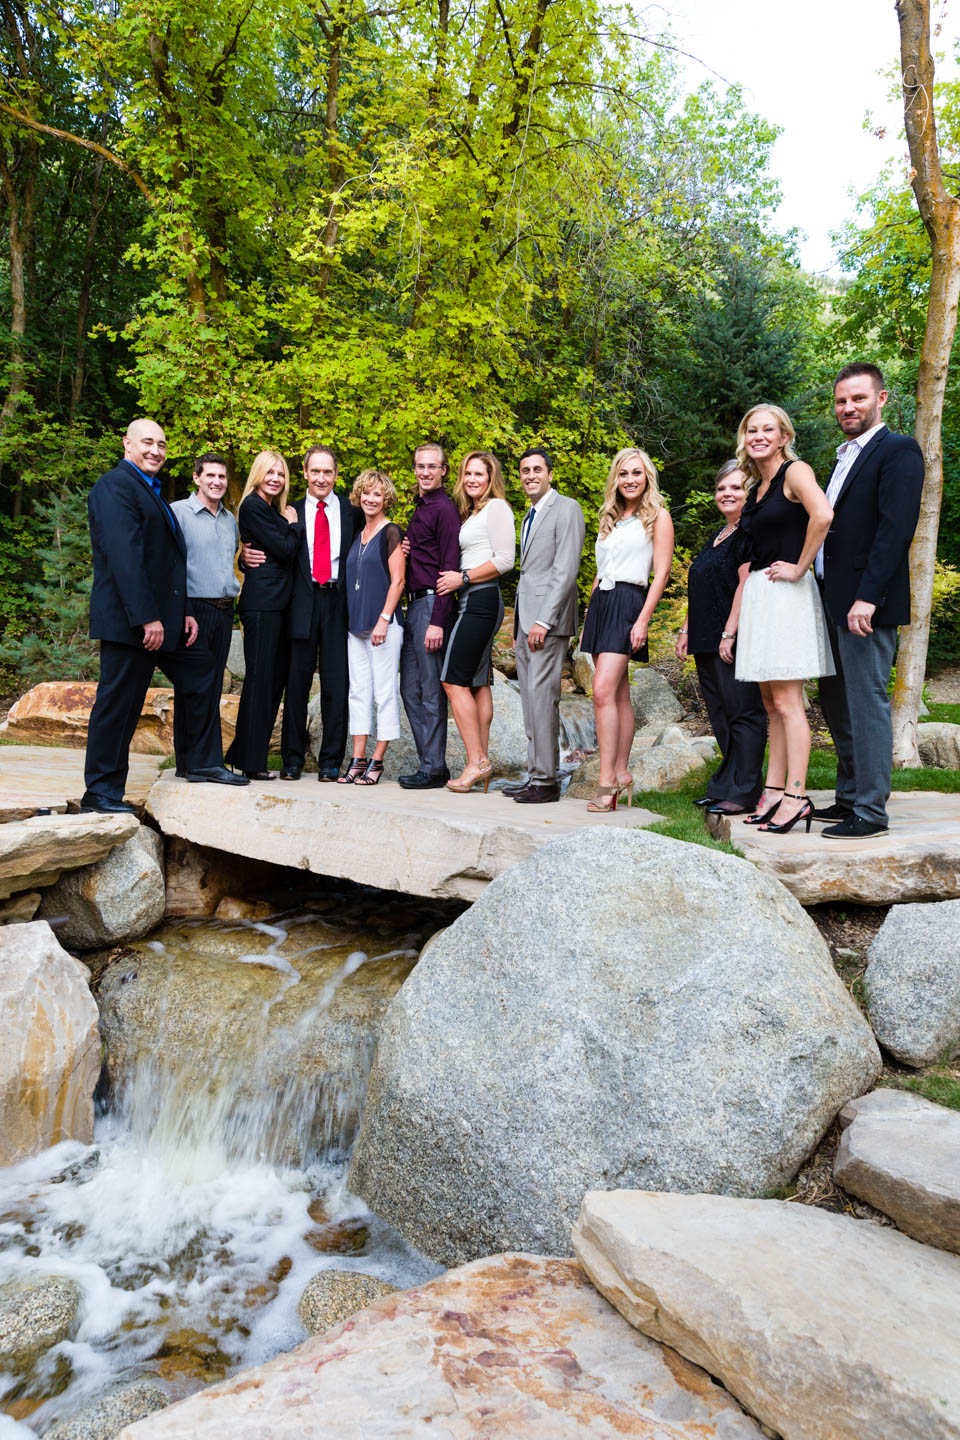 The whole team in a photo with a waterfall because why not?